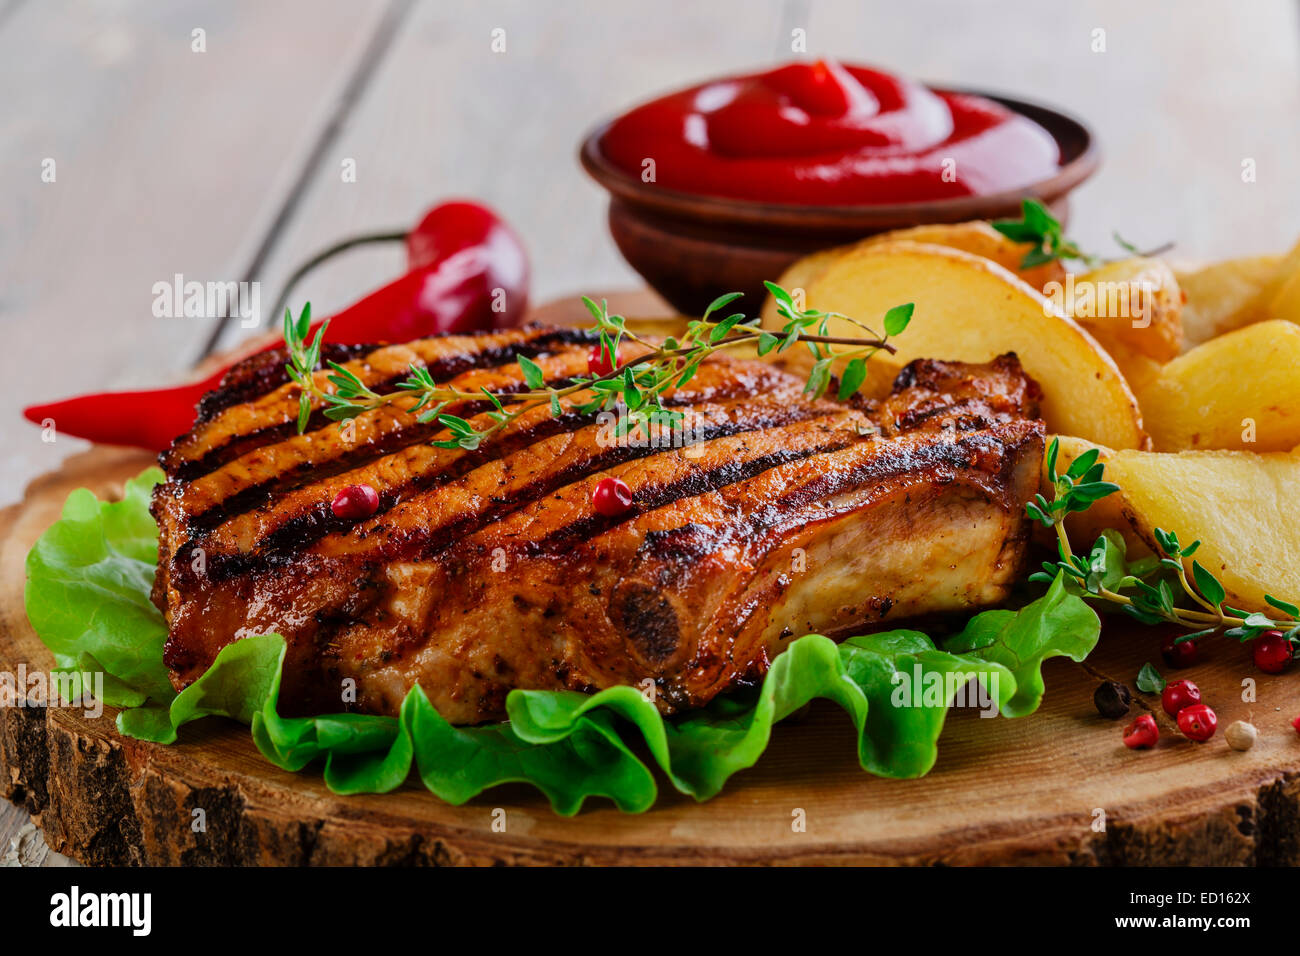 Grilled steak on the bone with potatoes Stock Photo